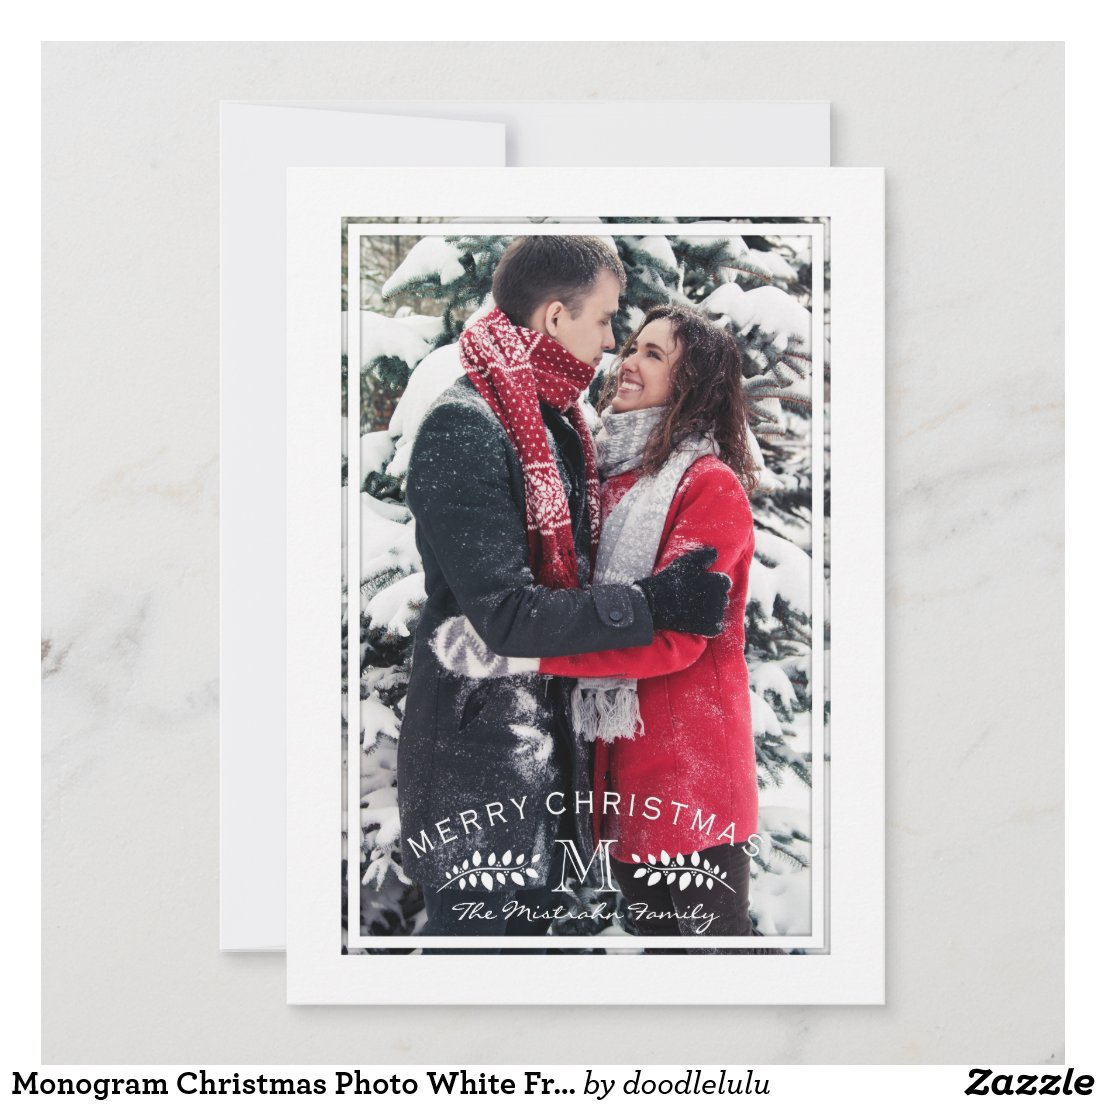 Monogram Christmas Photo White Frame Holiday Card